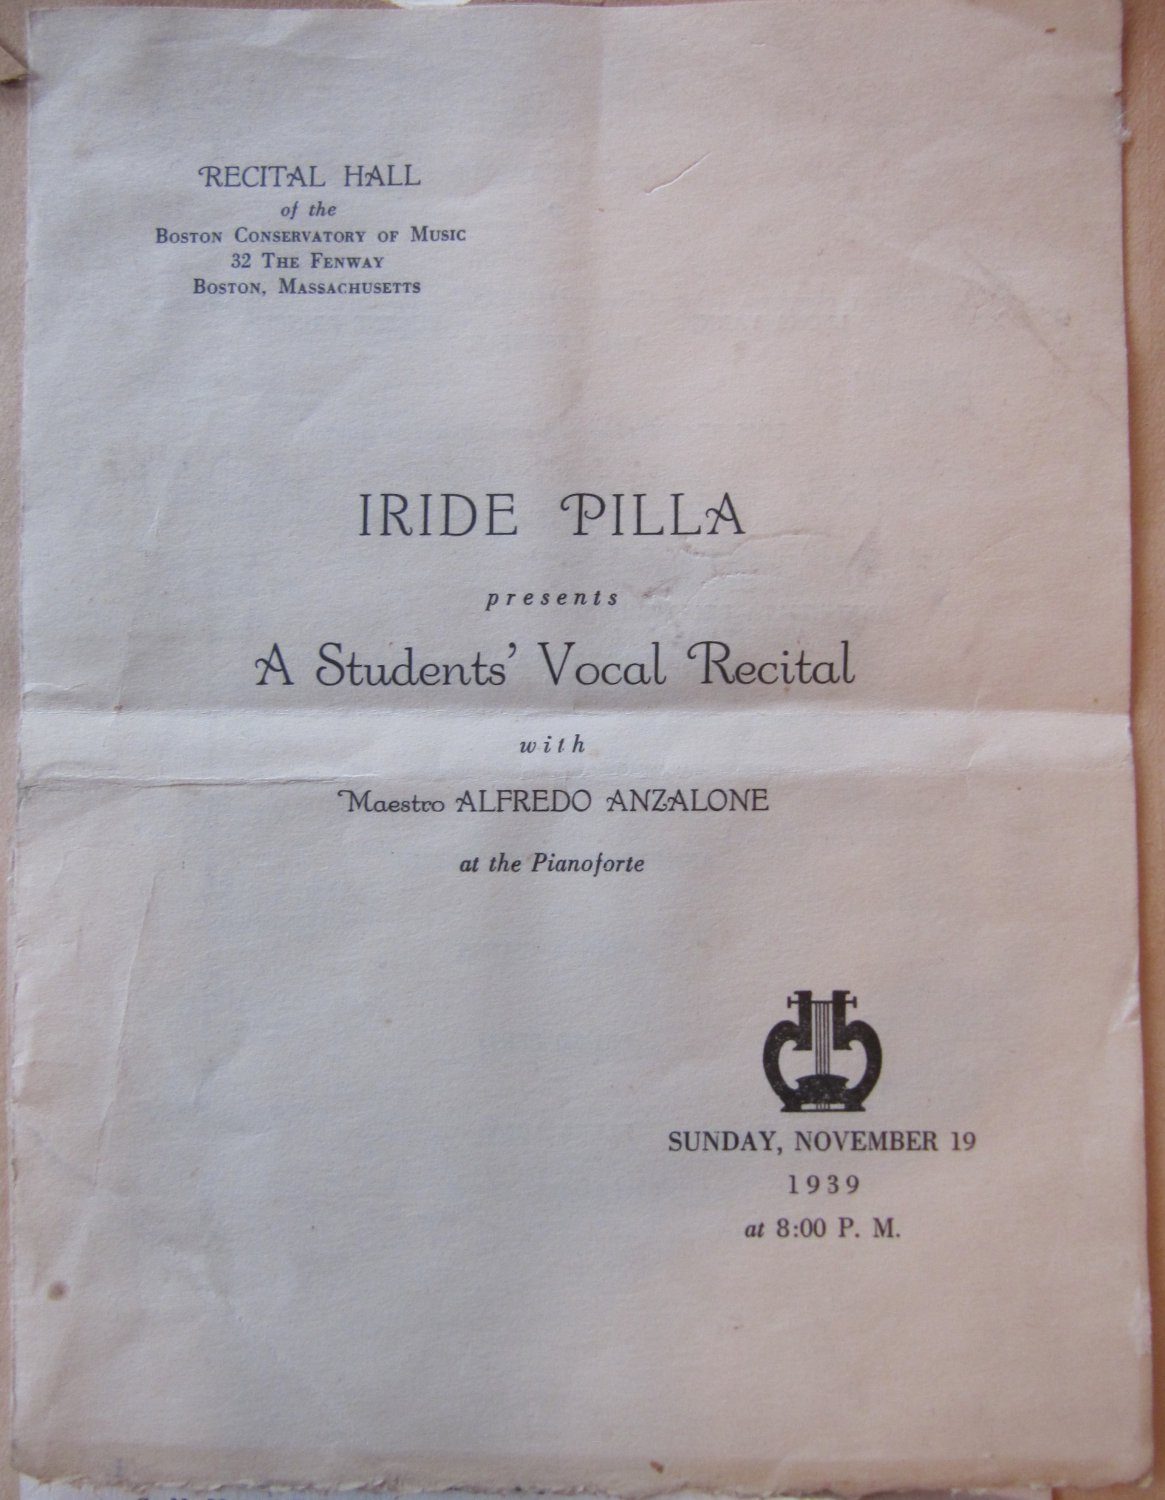 Lot of 9 Vintage 1940s Boston Conservatory of Music Recital and Concert Programs Iride Pilla